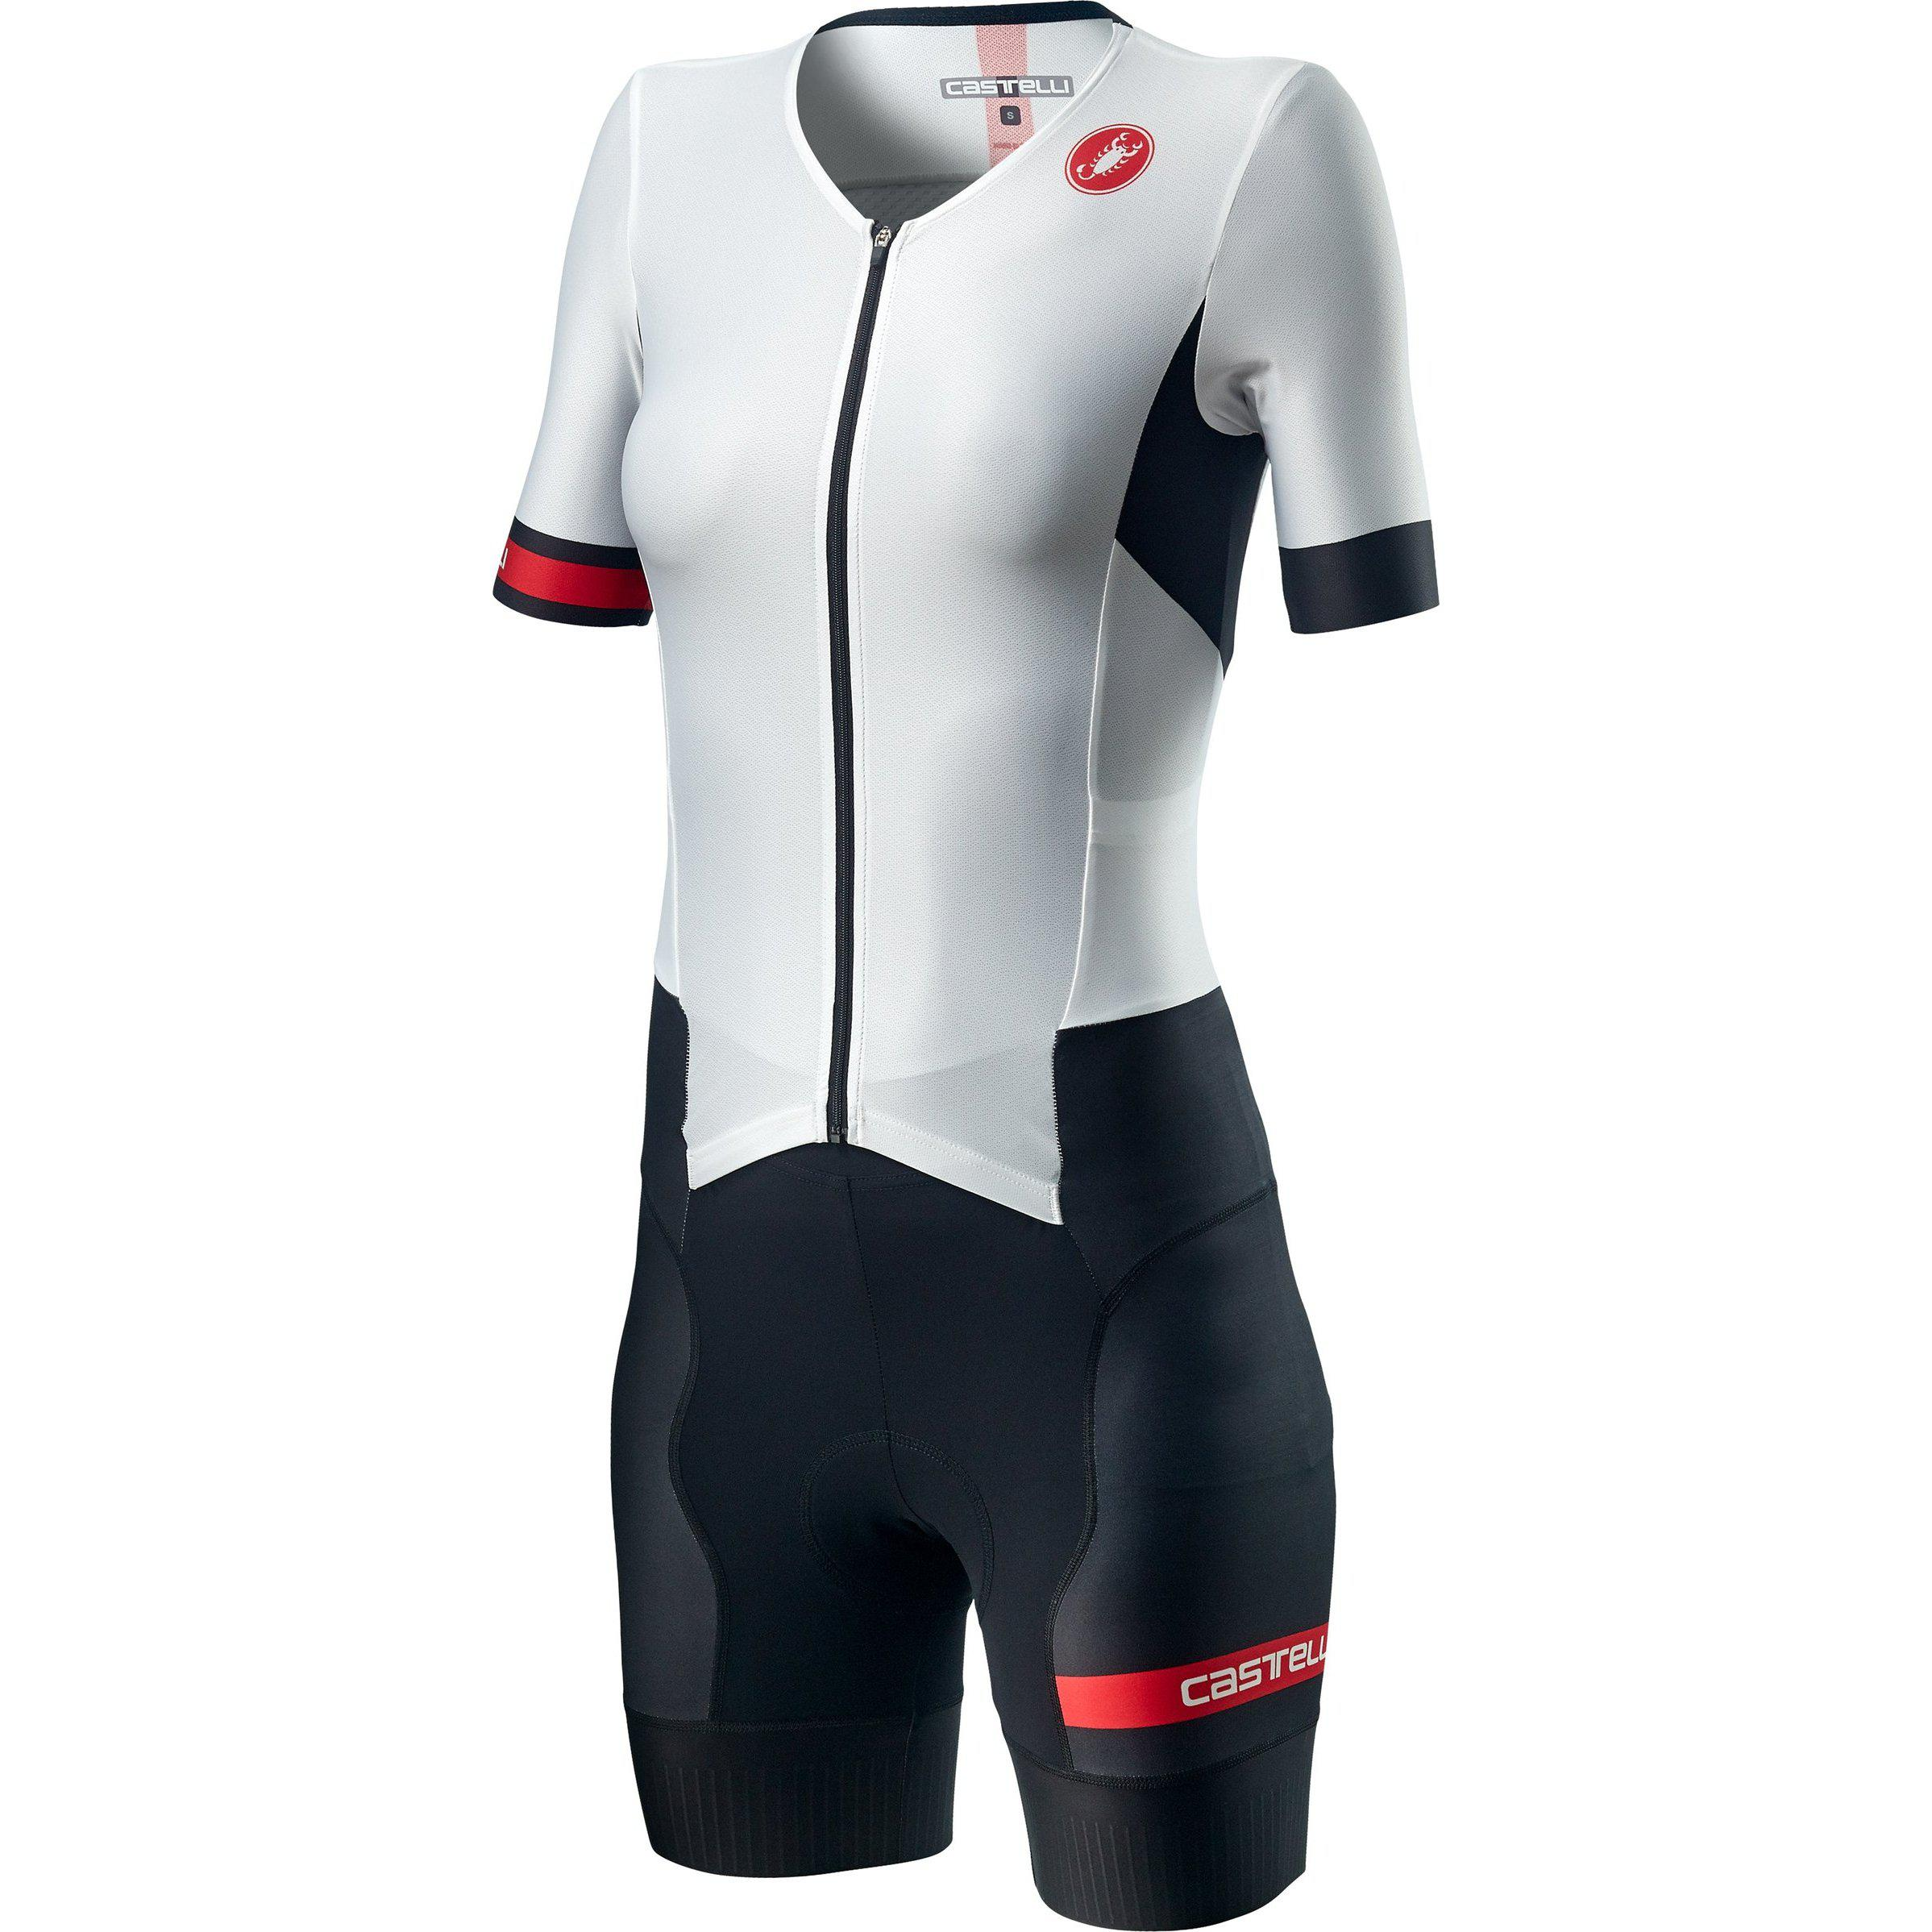 Castelli-Castelli Free Sanremo 2 Women's Suit Short Sleeve-White Black-XS-CS200961011-saddleback-elite-performance-cycling